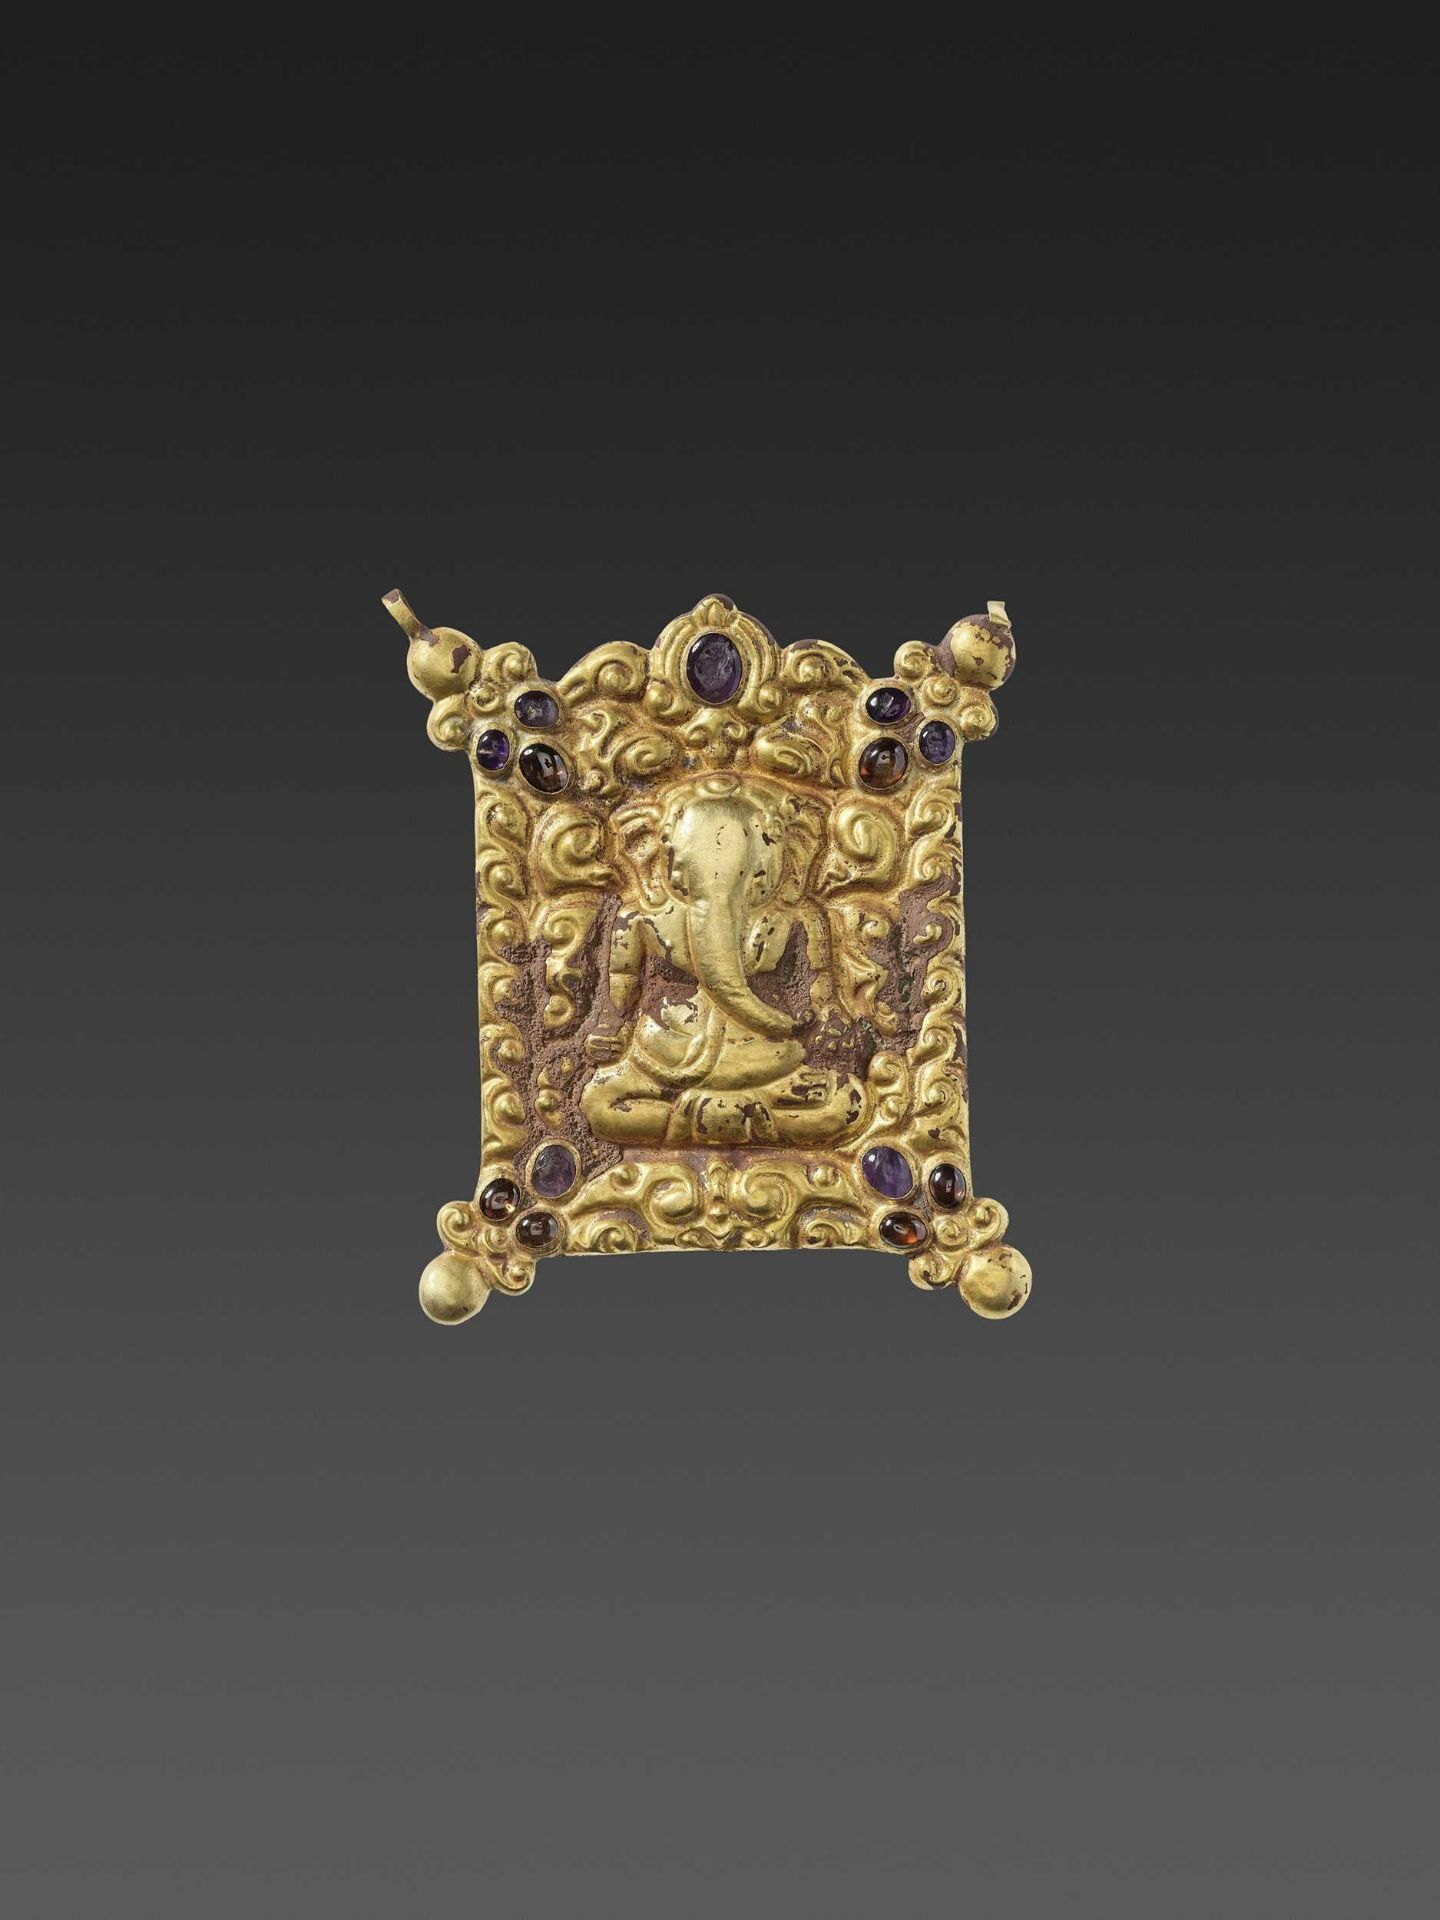 A CHAM GEMSTONE-SET GOLD REPOUSSÉ PECTORAL DEPICTING GANESHA MEDITATING